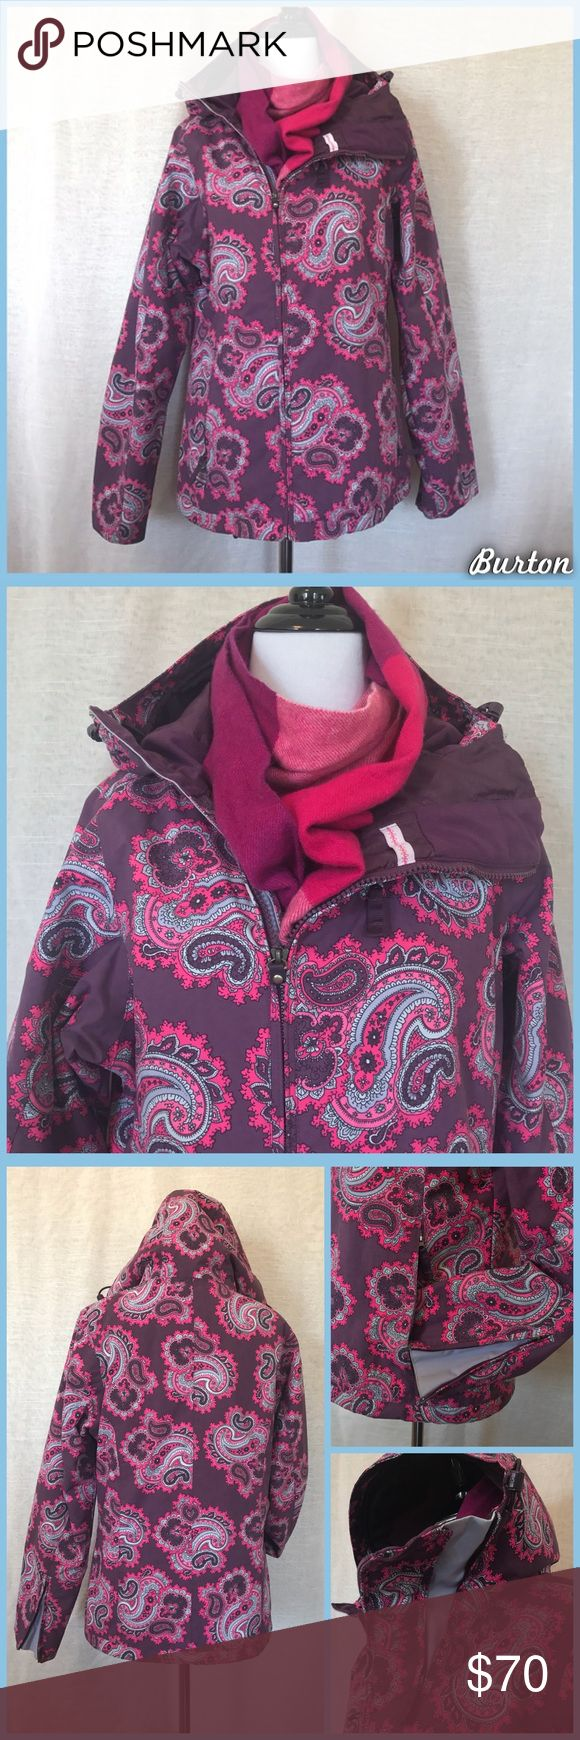 Burton Ski Jacket Burton Ski Jacket, size small in great pre-loved condition. Pink and purple paisley print. •I'm open to offers and negotiations on all items!• Burton Jackets & Coats